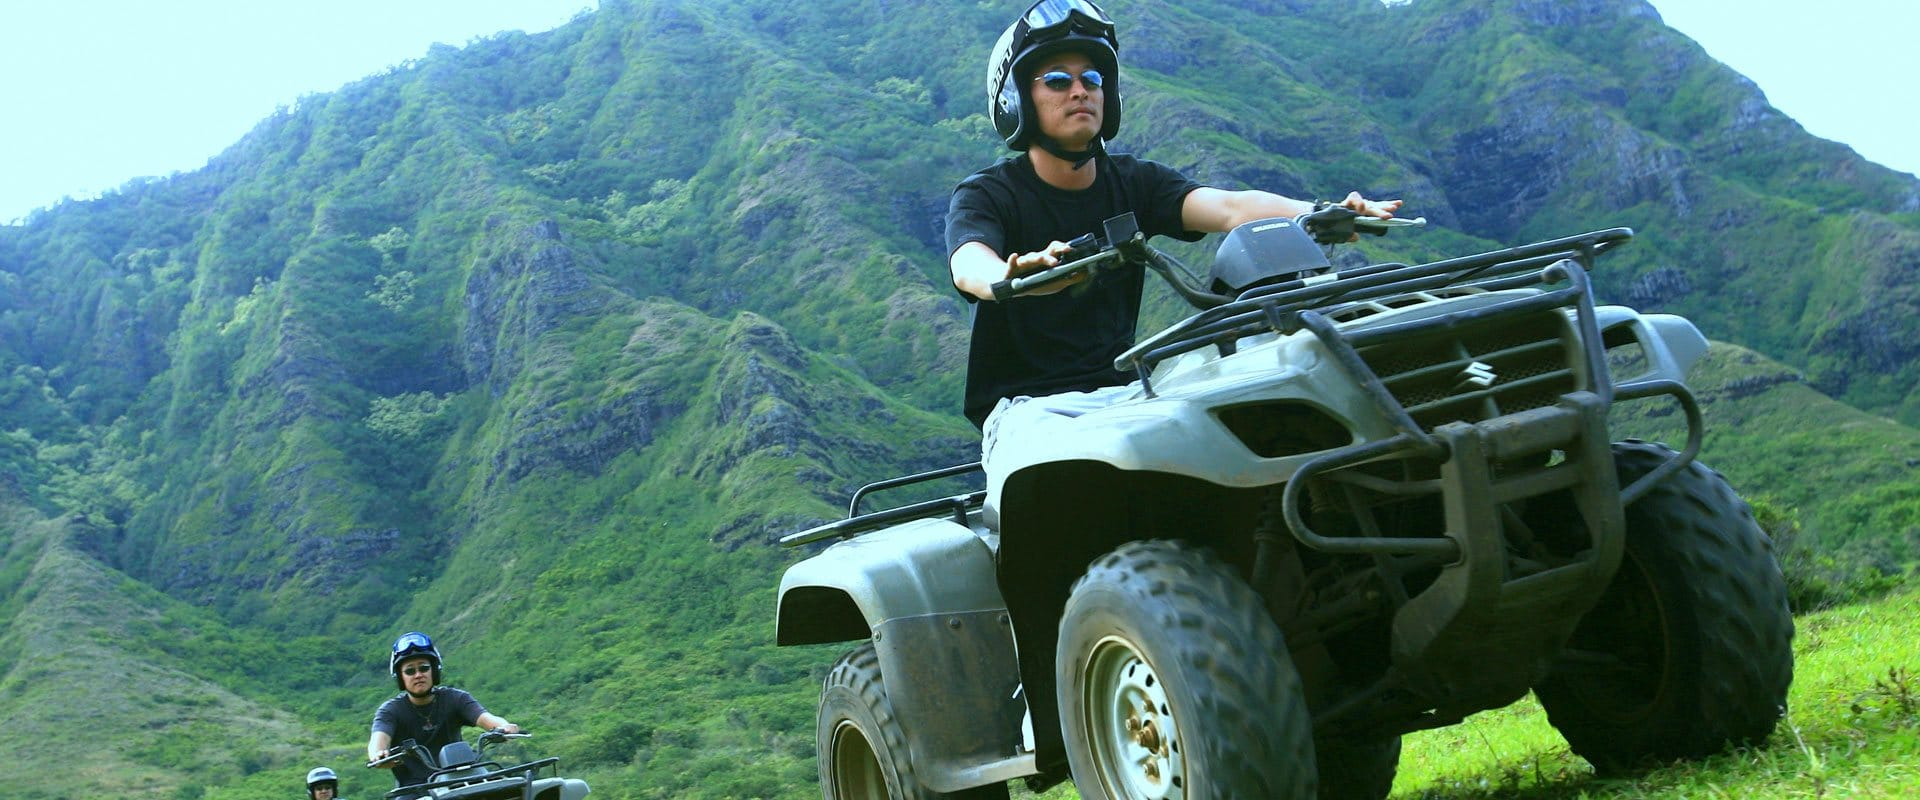 ATV on trails deep into the scenic valleys